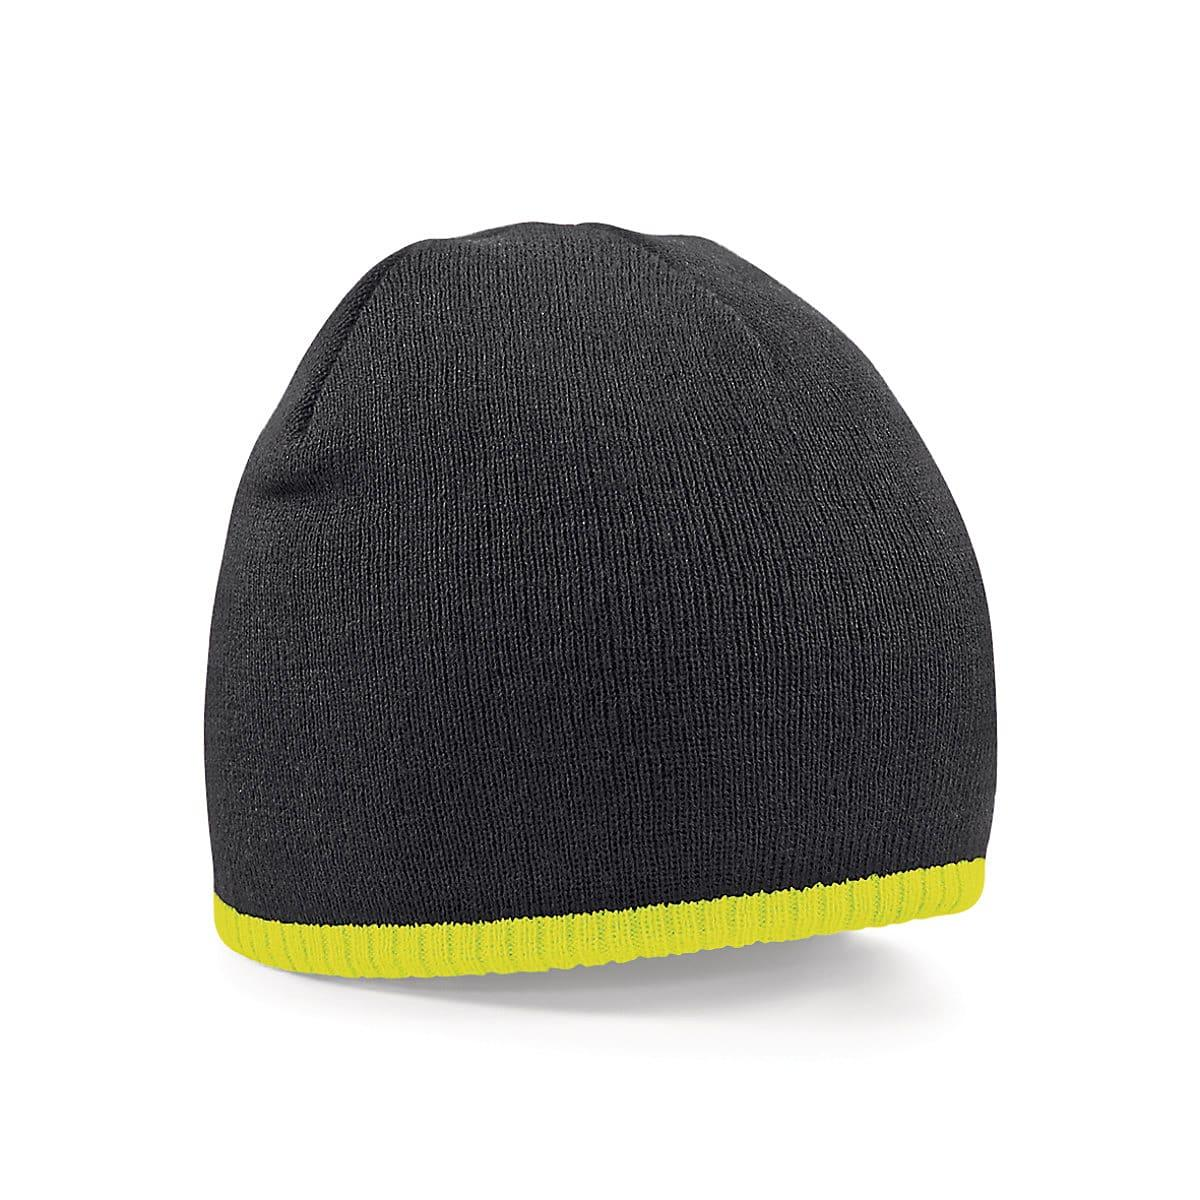 Beechfield Two-Tone Beanie Knitted Hat in Black / Fluorescent Yellow (Product Code: B44C)